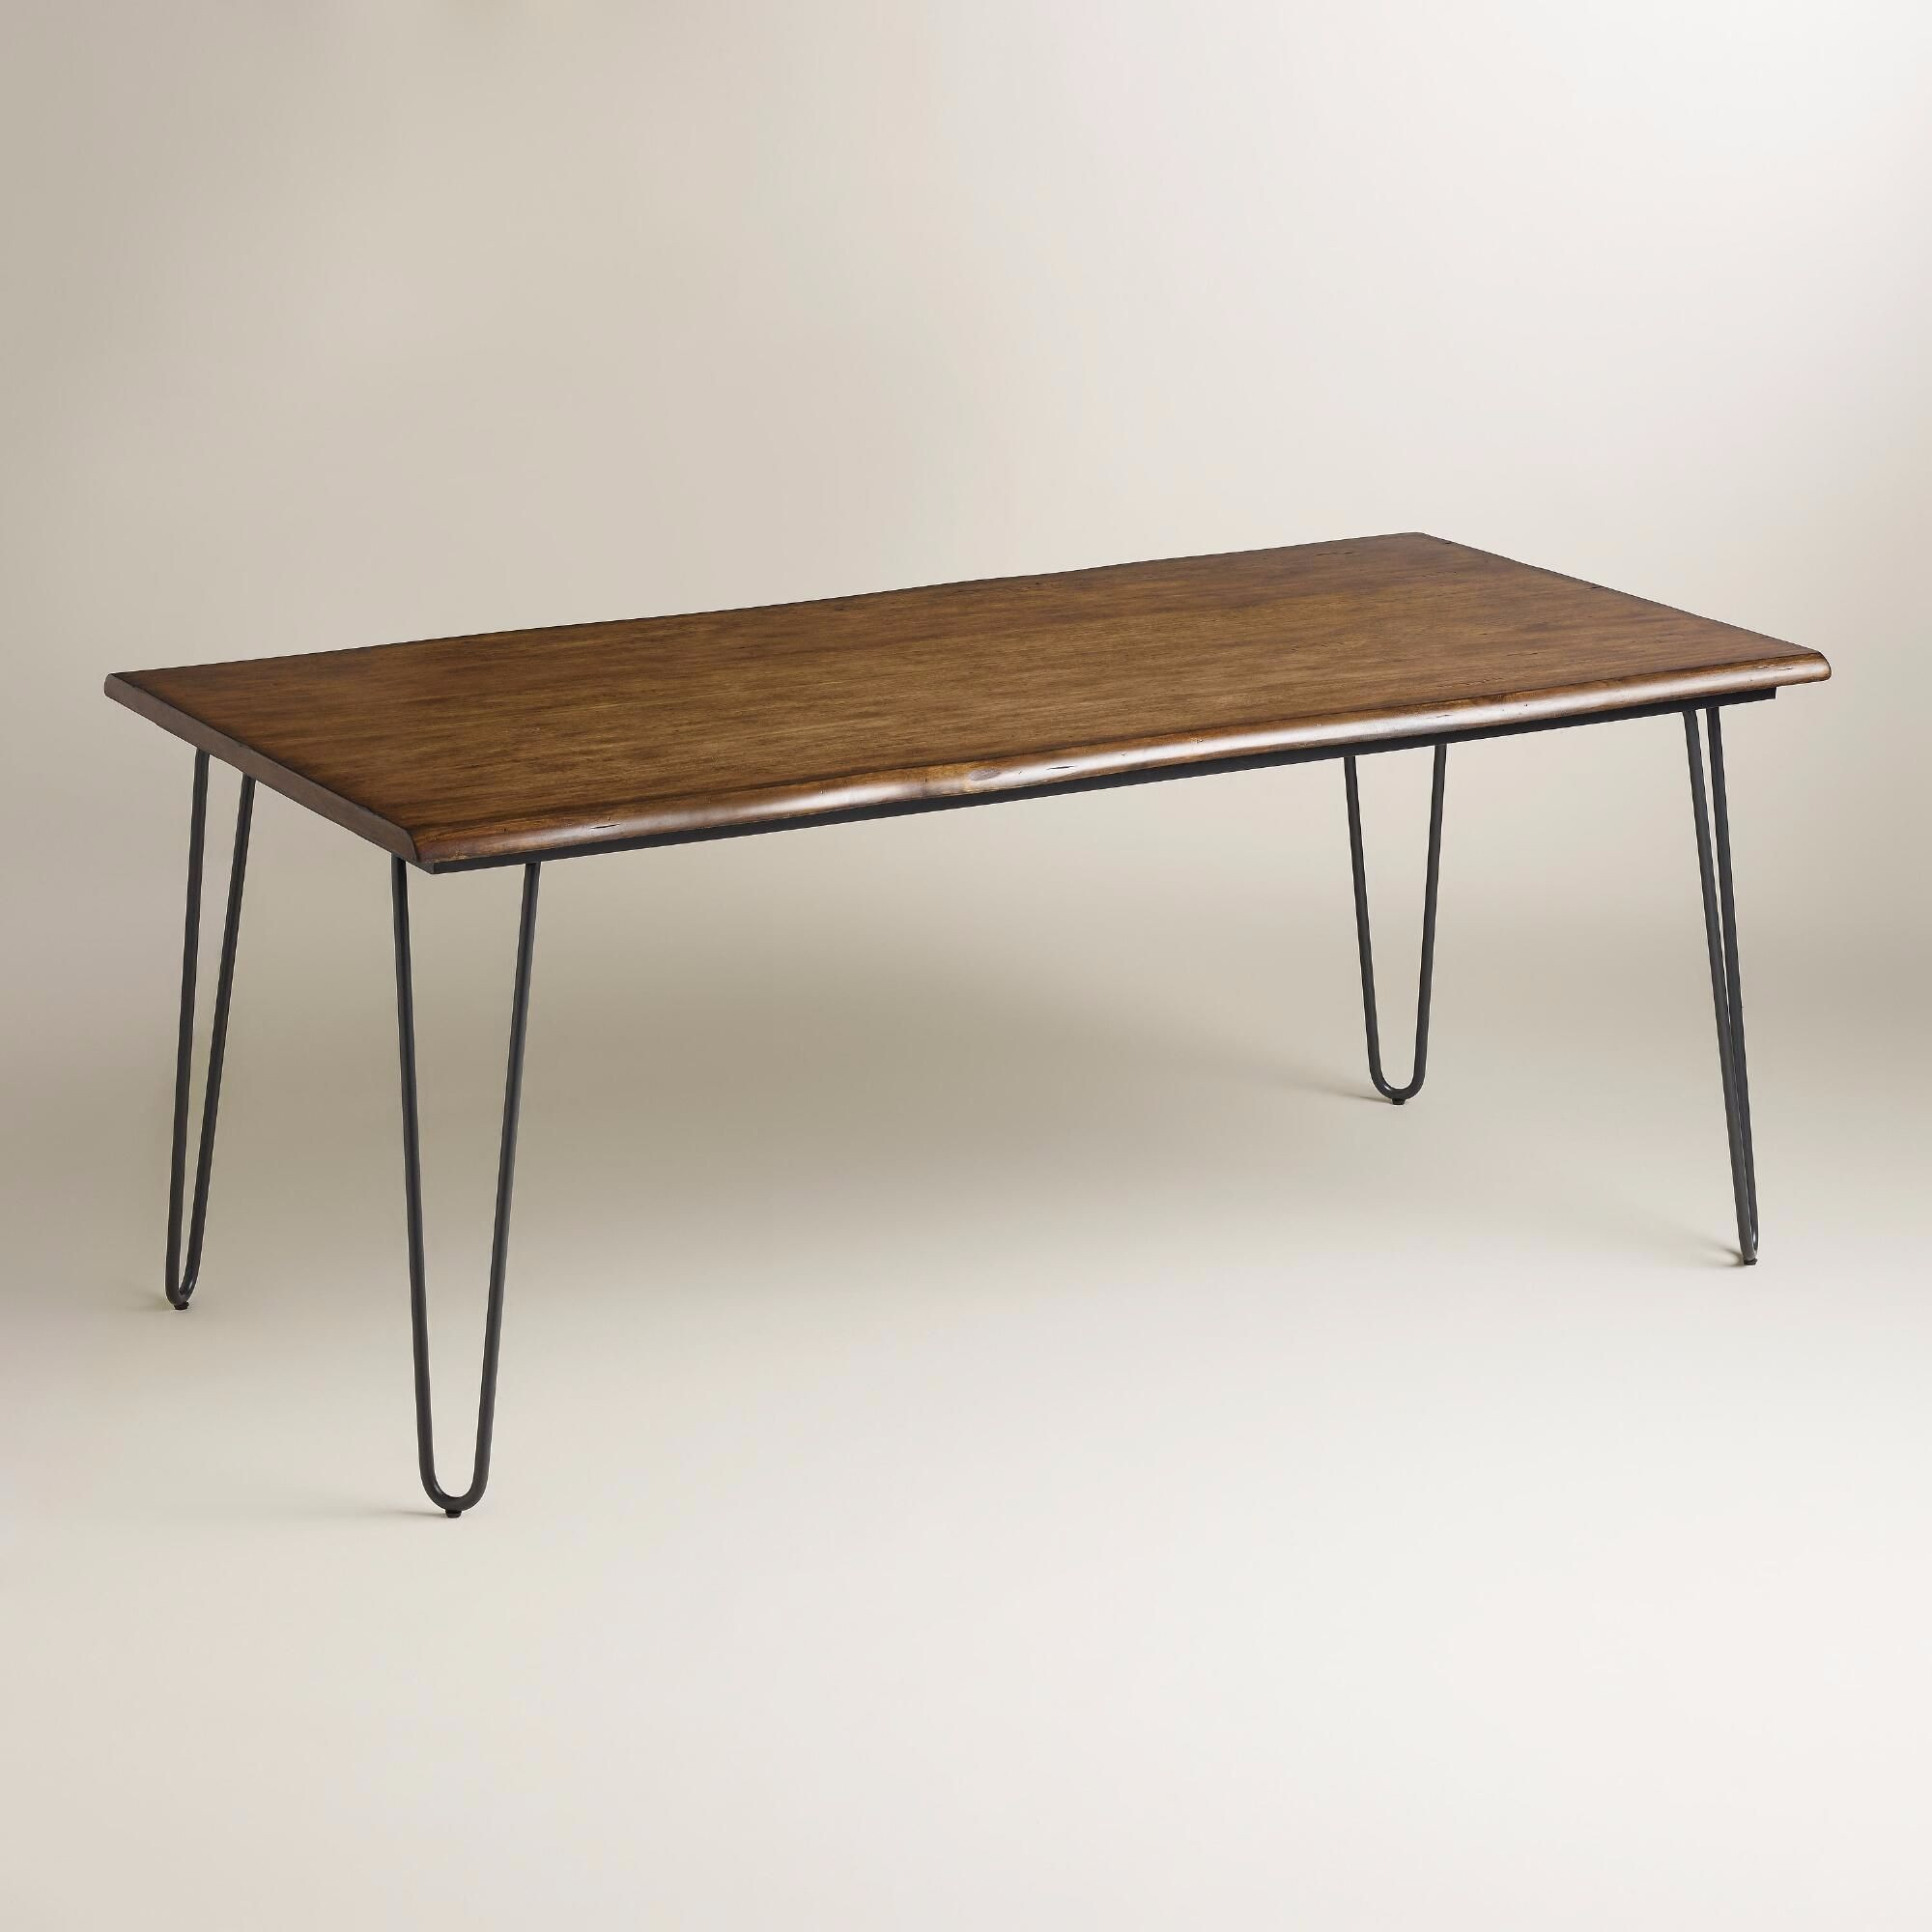 Best ideas about Dining Table Legs . Save or Pin Furniture Finds 6 dining tables to save or splurge on Now.